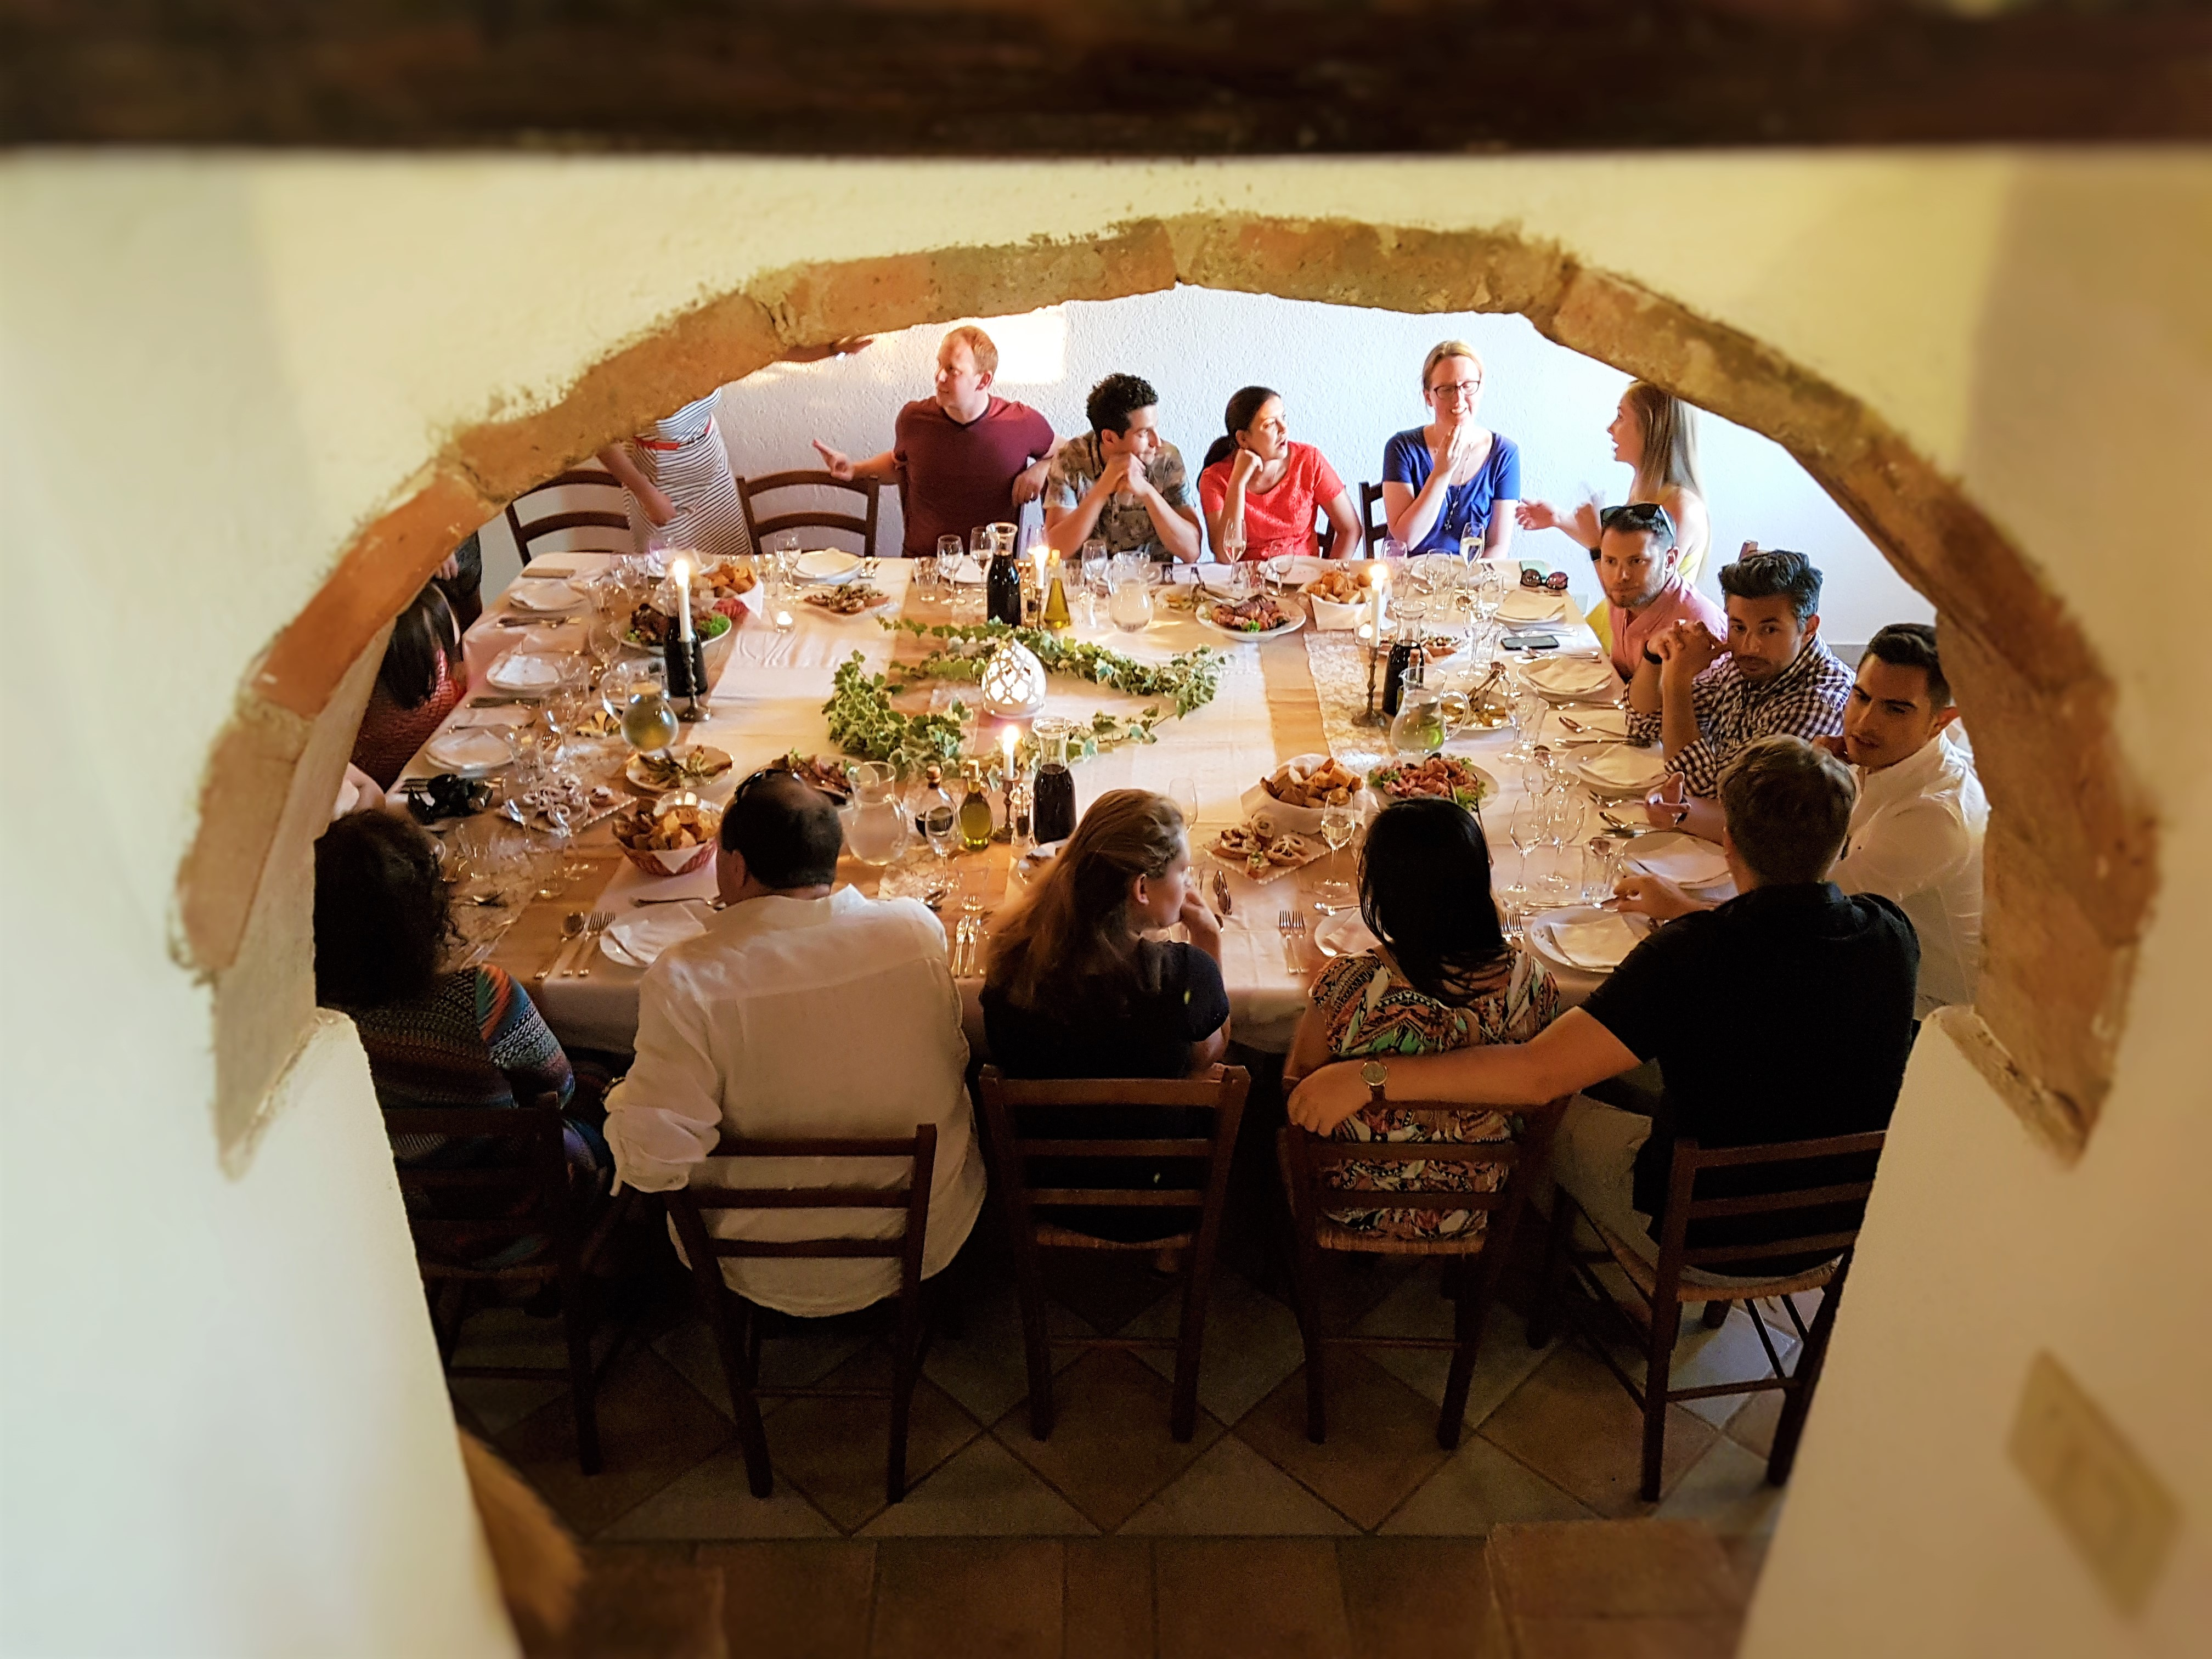 Everyone sits together at our Tuscan Banquet at our Chianti Vacation Rentals in Tuscany